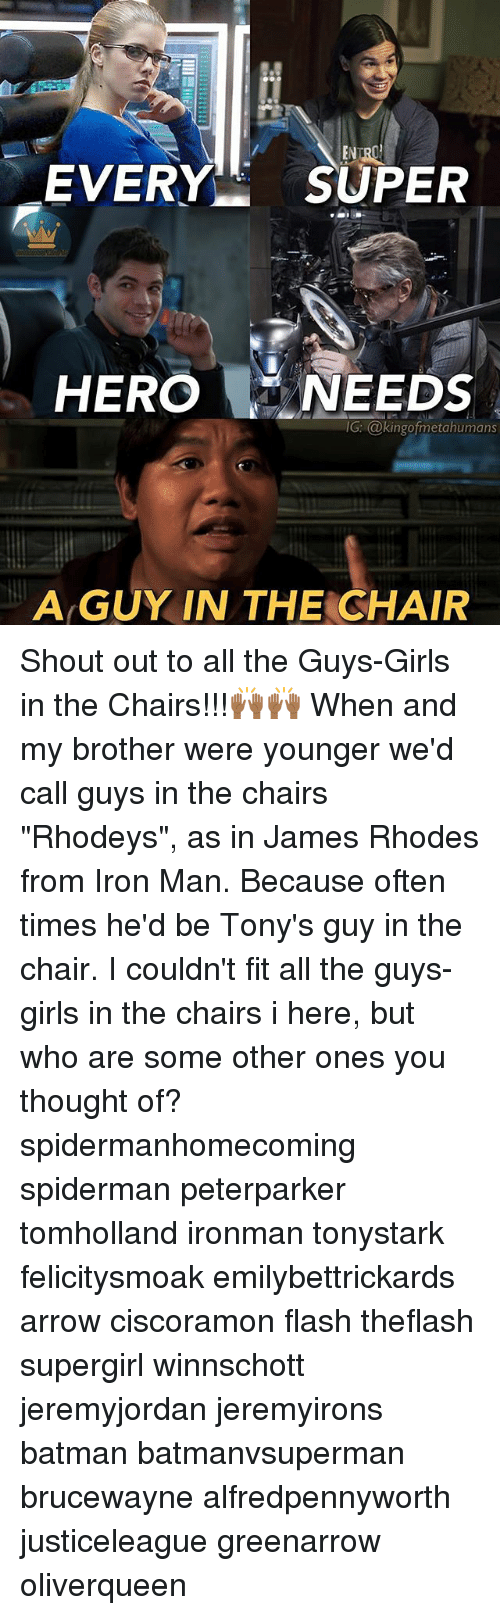 """tonys: EVERY SUPER  HERO NEEDS  IG: @kingofmetahumans  G: @kingofmetahumans  A GUY IN THE CHAIR Shout out to all the Guys-Girls in the Chairs!!!🙌🏾🙌🏾 When and my brother were younger we'd call guys in the chairs """"Rhodeys"""", as in James Rhodes from Iron Man. Because often times he'd be Tony's guy in the chair. I couldn't fit all the guys-girls in the chairs i here, but who are some other ones you thought of? spidermanhomecoming spiderman peterparker tomholland ironman tonystark felicitysmoak emilybettrickards arrow ciscoramon flash theflash supergirl winnschott jeremyjordan jeremyirons batman batmanvsuperman brucewayne alfredpennyworth justiceleague greenarrow oliverqueen"""